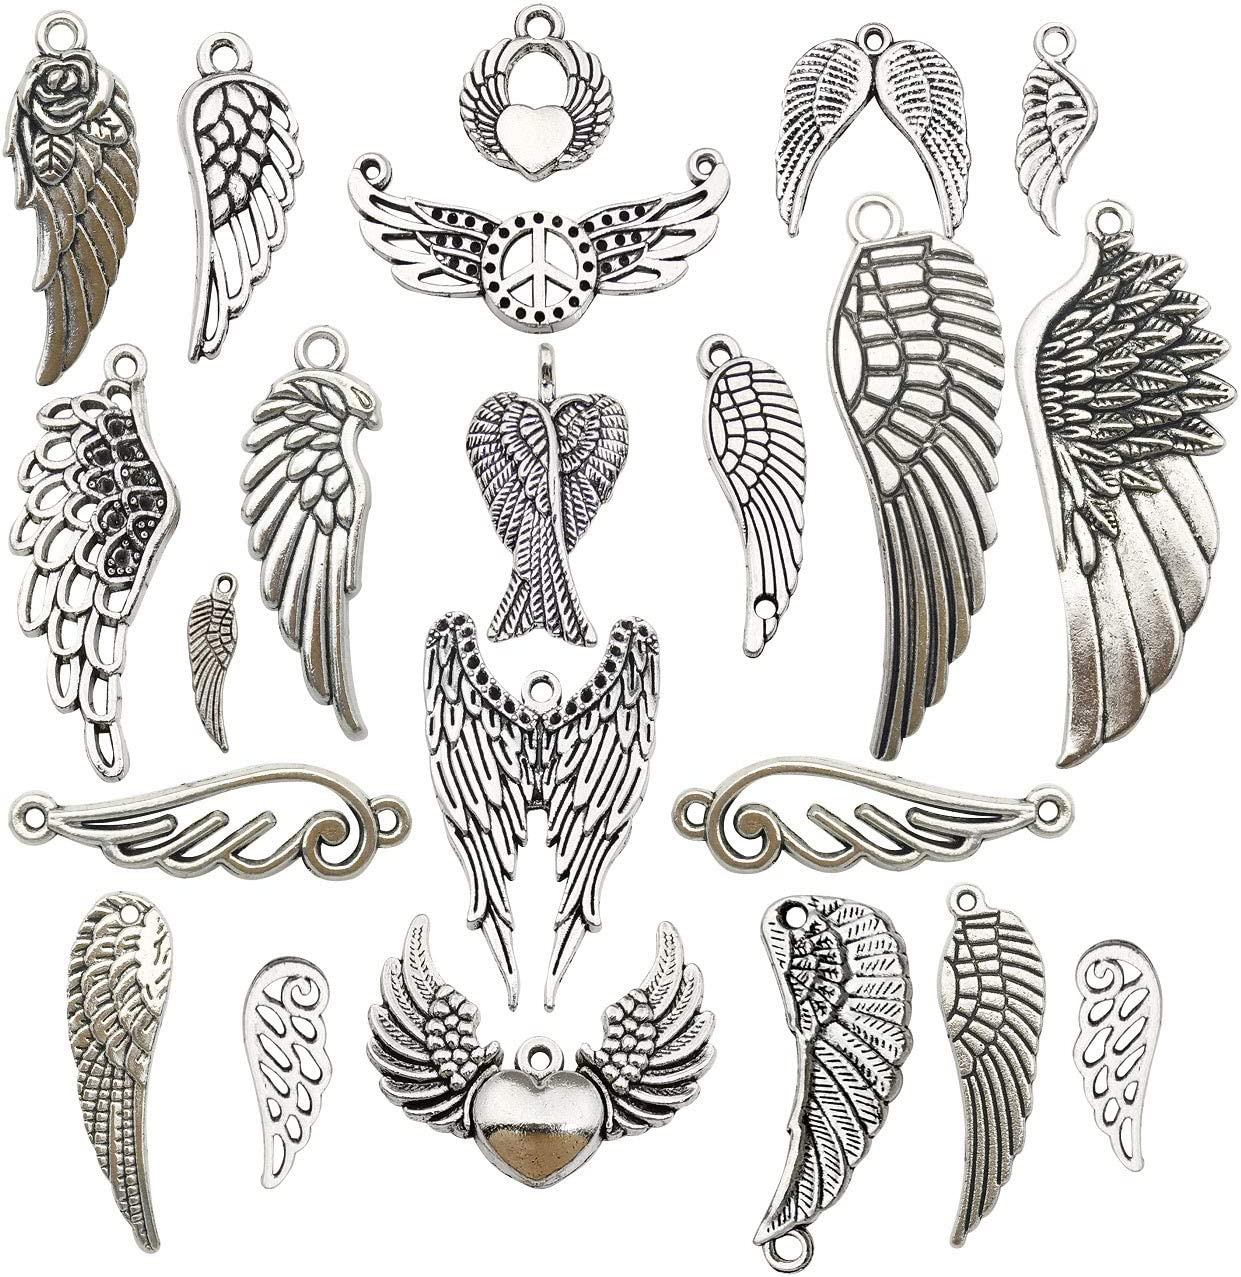 FOGAWA 140Pcs Tibetan Wings Vintage Angel Wing Charm Spacer Beads Silver Jewellery Beads for Bracelet Necklace Jewelry Making Findings with Container Box 7 Styles